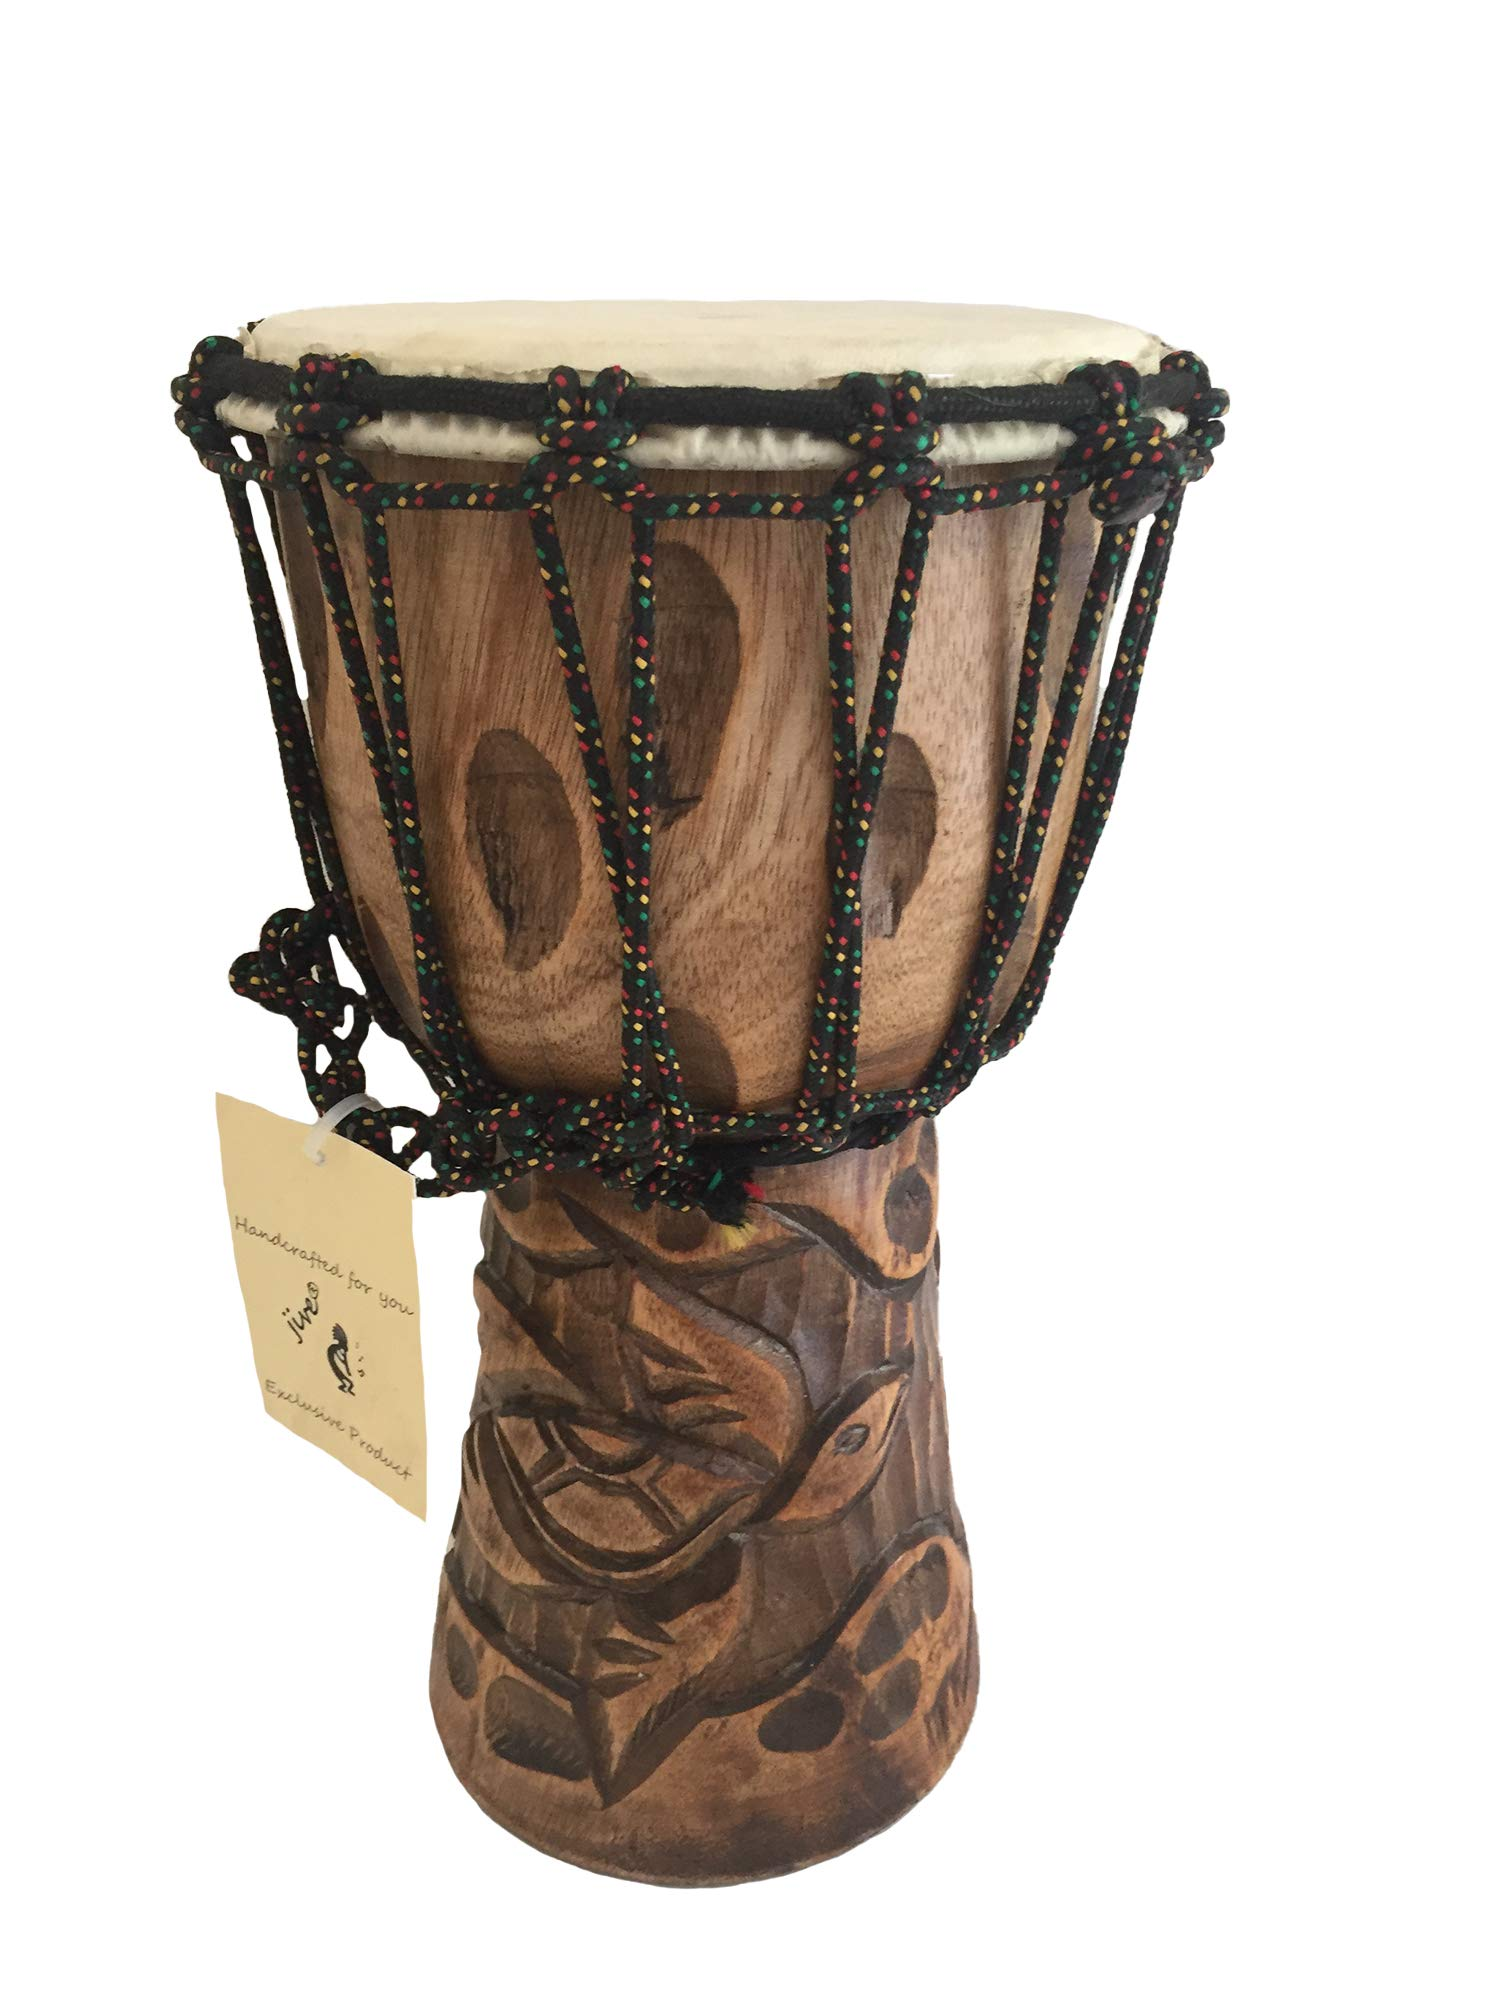 Djembe Drum Solid Wood Deep Carved Bongo Congo African Drum - 12'' HIGH MED SIZE - Professional Quality - NOT MADE IN CHINA - JIVE BRAND (Turtle)